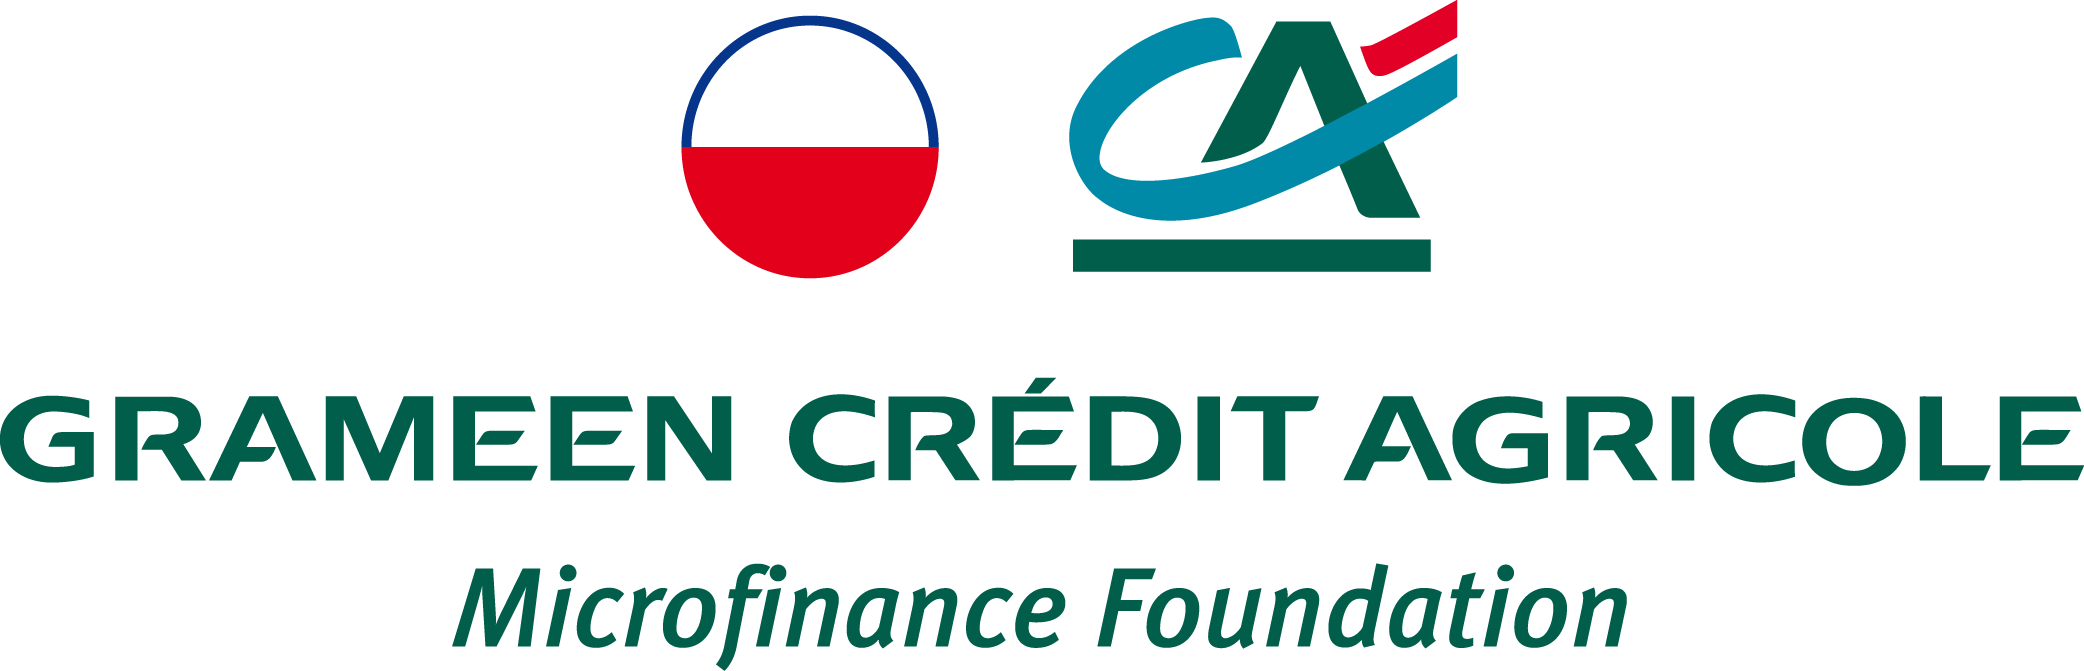 Grameen Credit Agricole Foundation